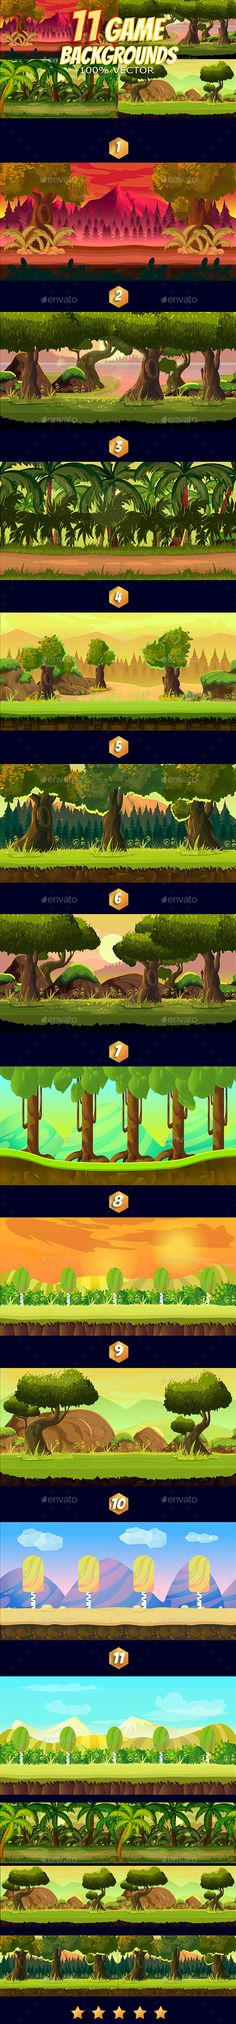 11 Game Backgrounds by VitaliyVill 11 Fresh Game Backgrounds. You can use this backgrounds for your game application/project. The Game background is made with 100 v Game Background Art, 2d Game Art, Last Battle, The Ancient One, Board Game Design, Color Script, Battle Games, Medical Art, Game Character Design